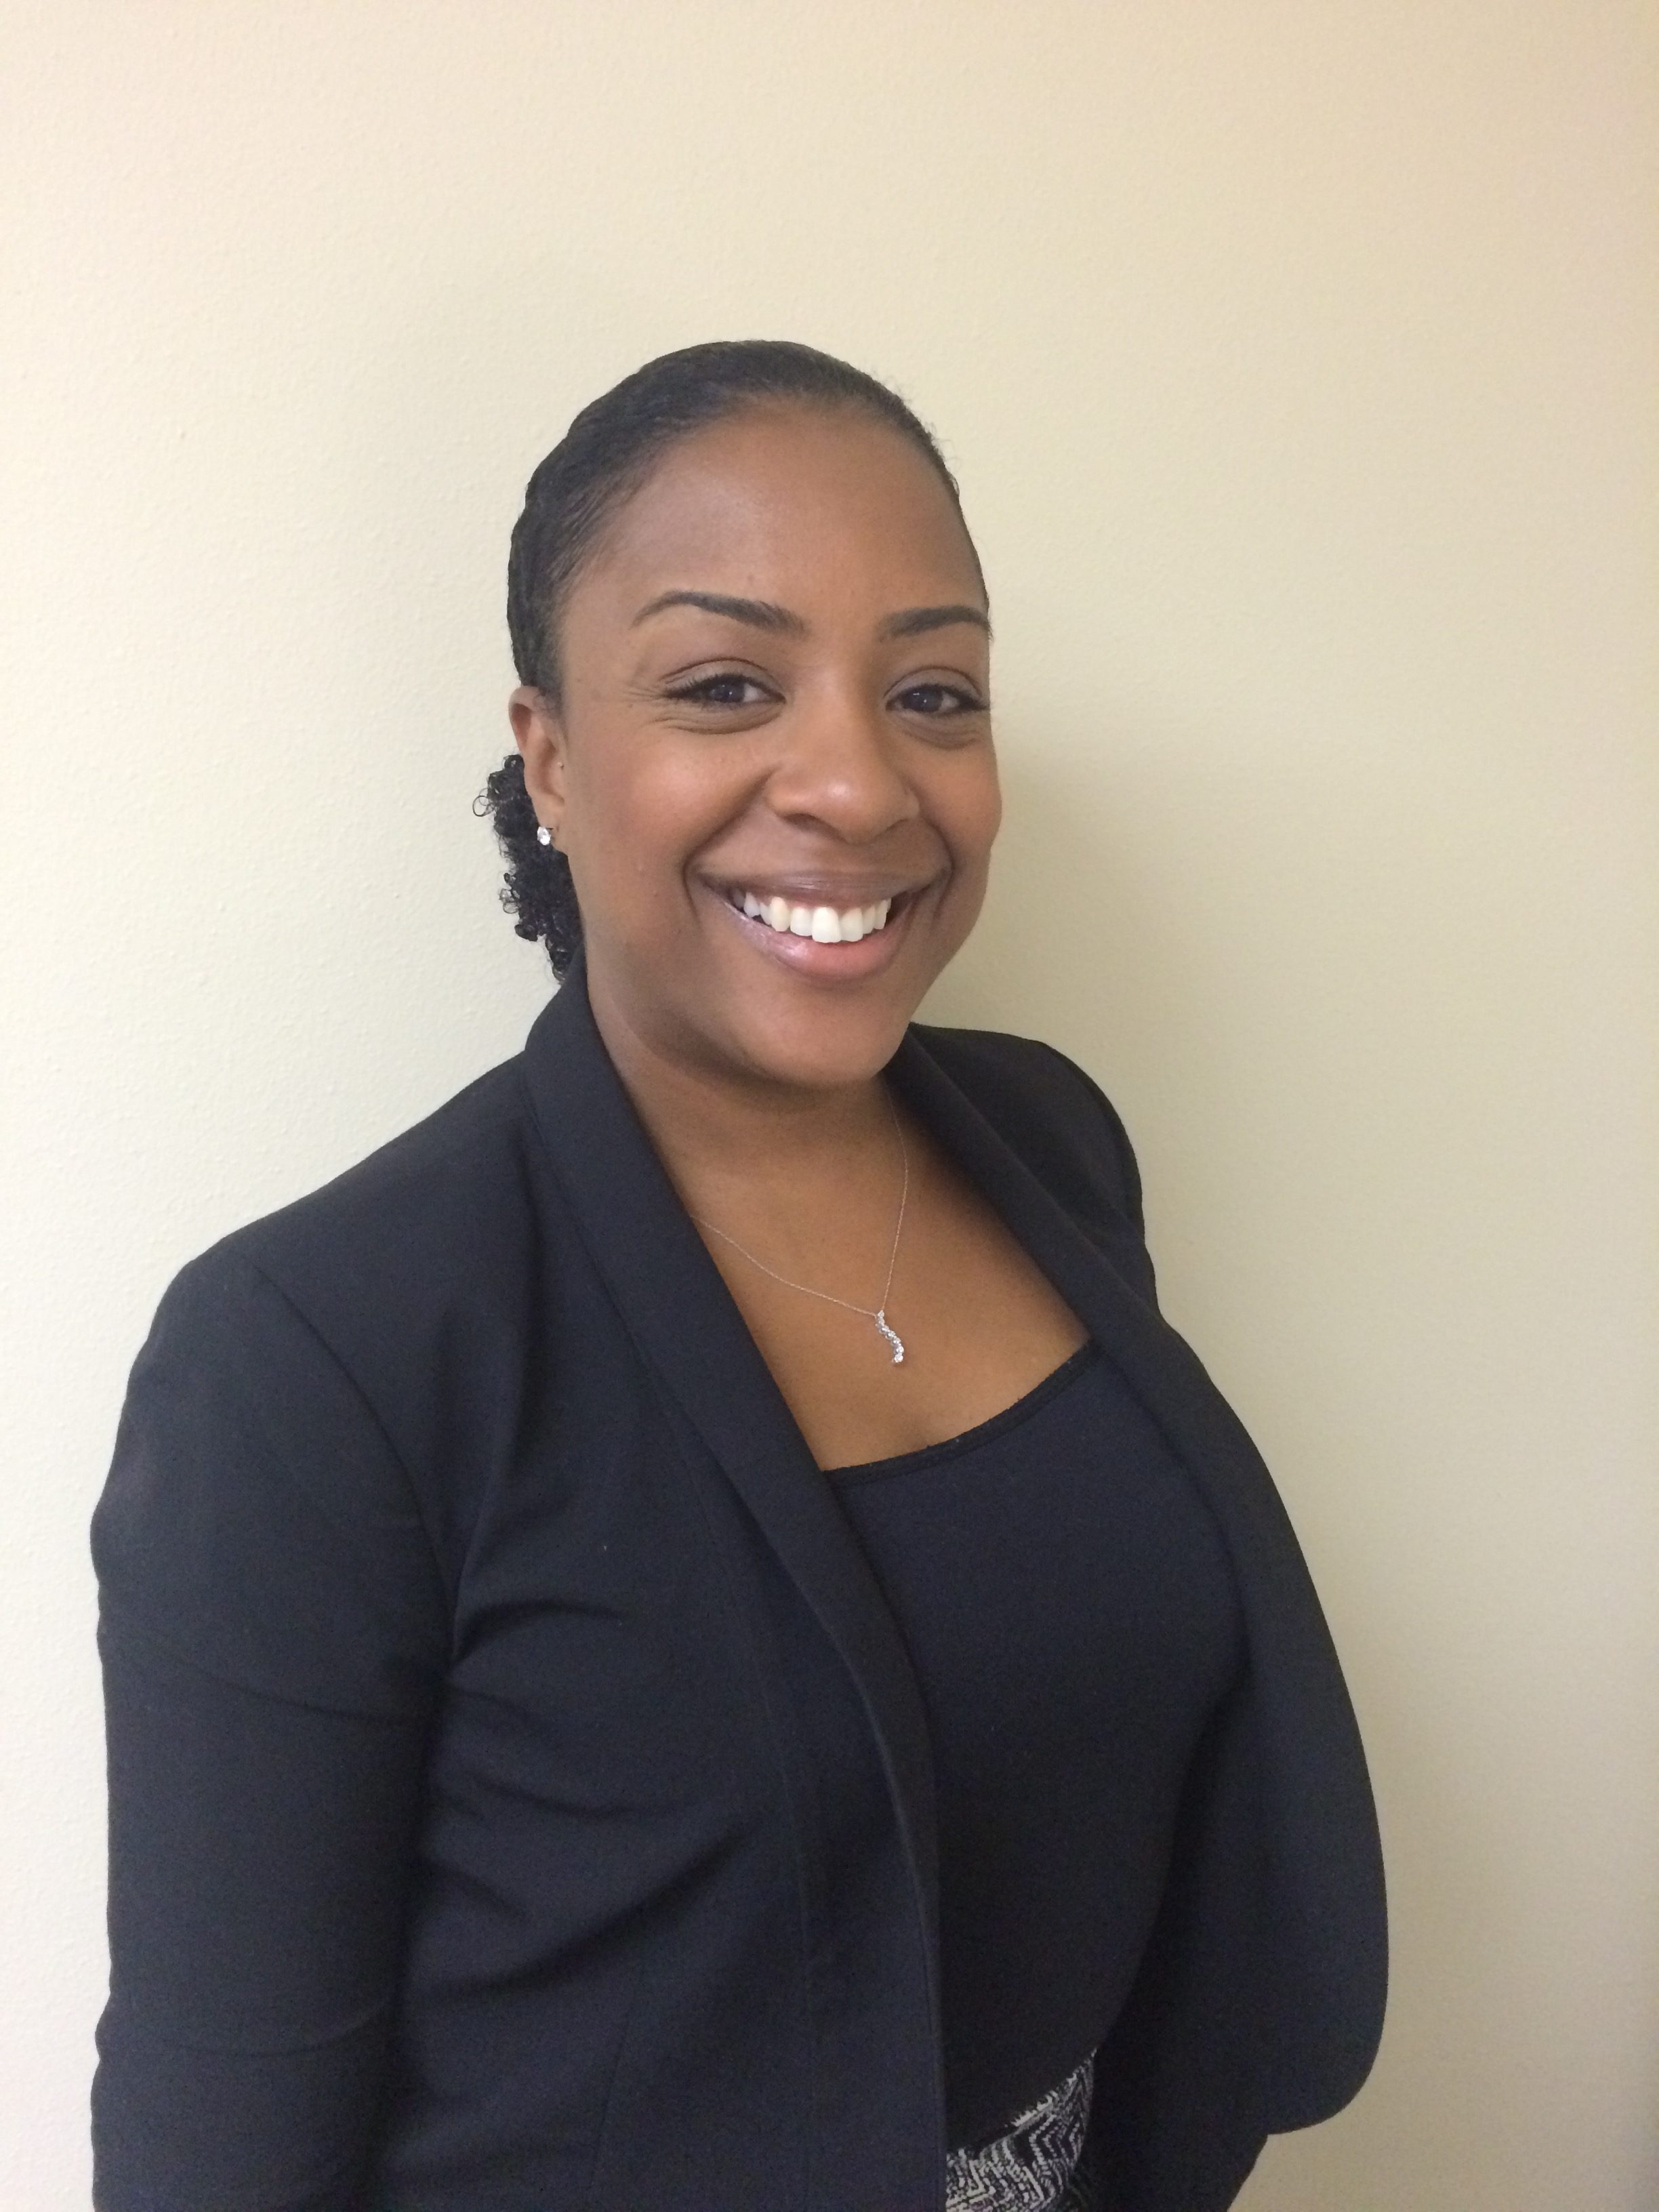 Aryane S. Williams, PLPC, M.A.